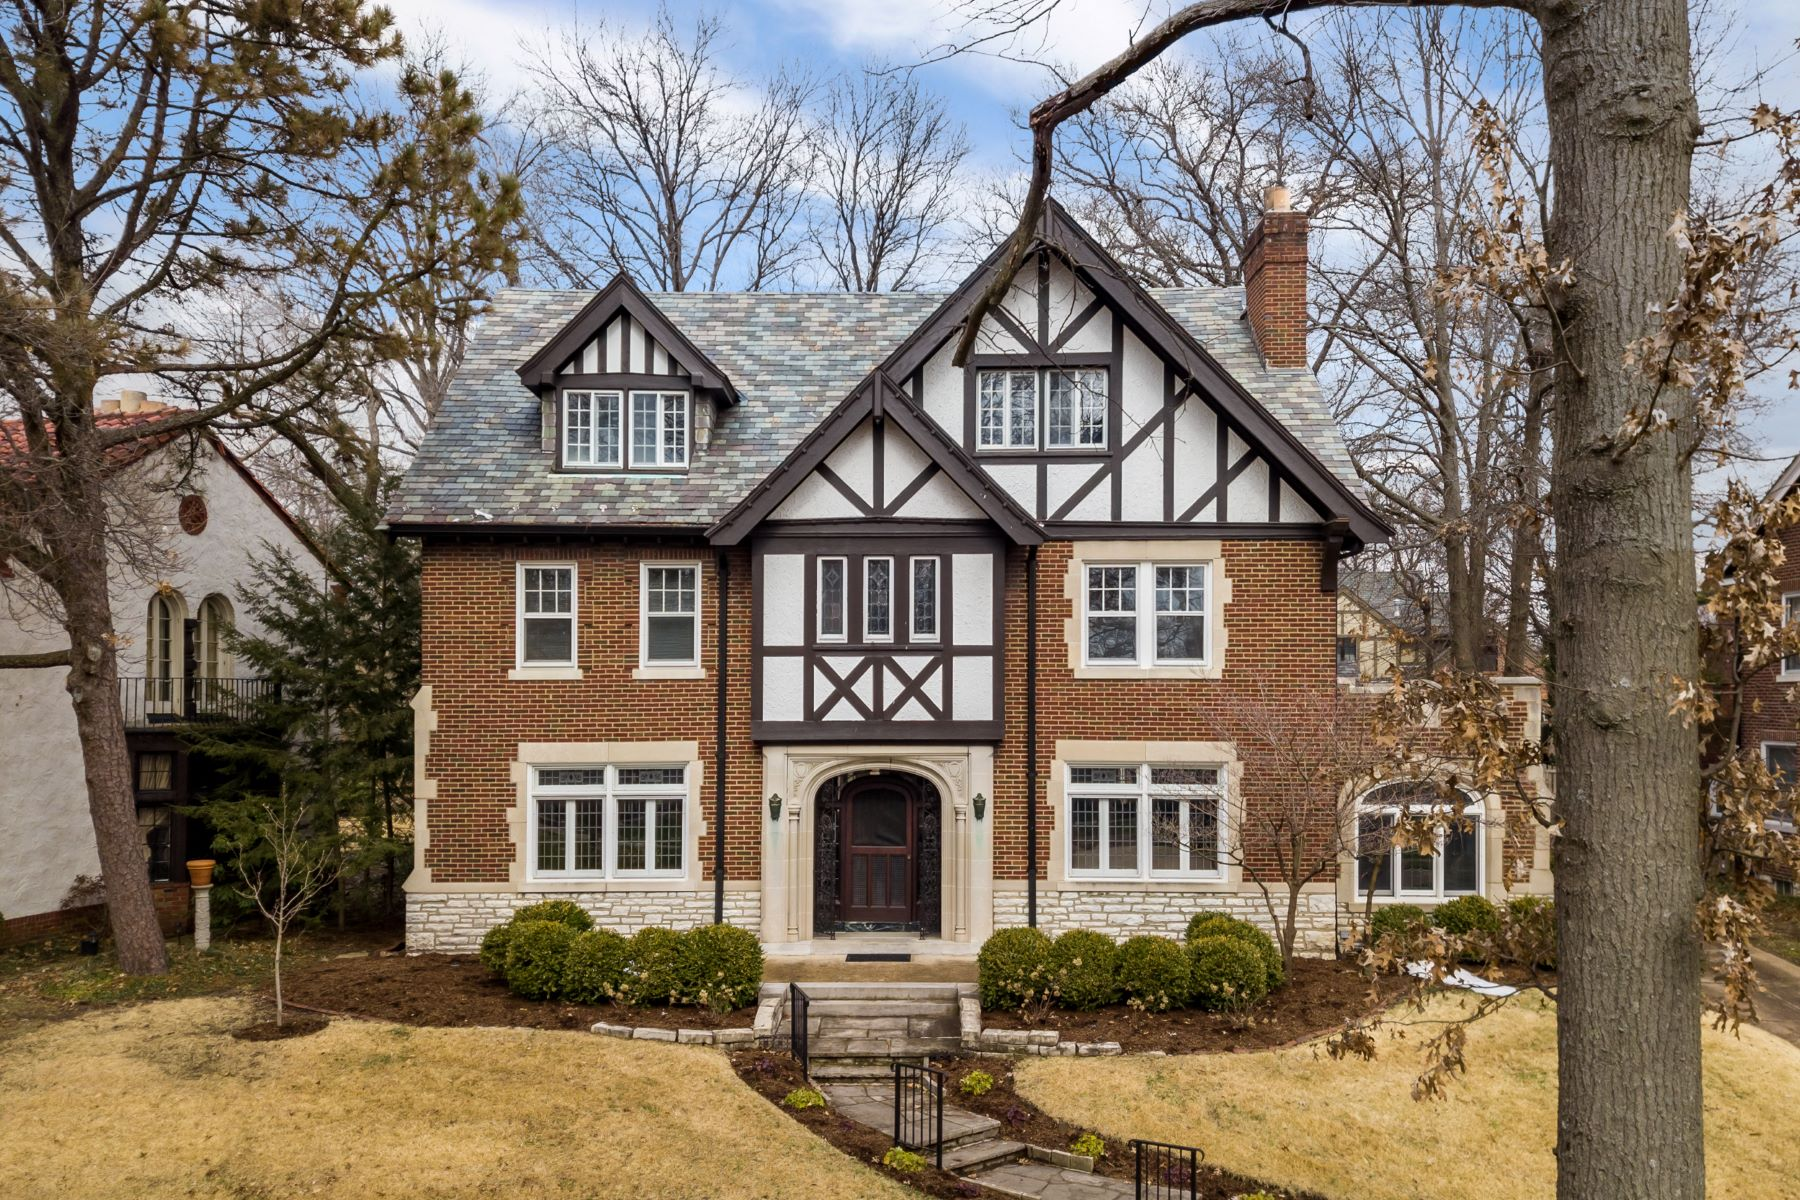 Property for Sale at Coveted University Hills Home with Gorgeous Architecture 7281 Greenway Avenue University City, Missouri 63130 United States